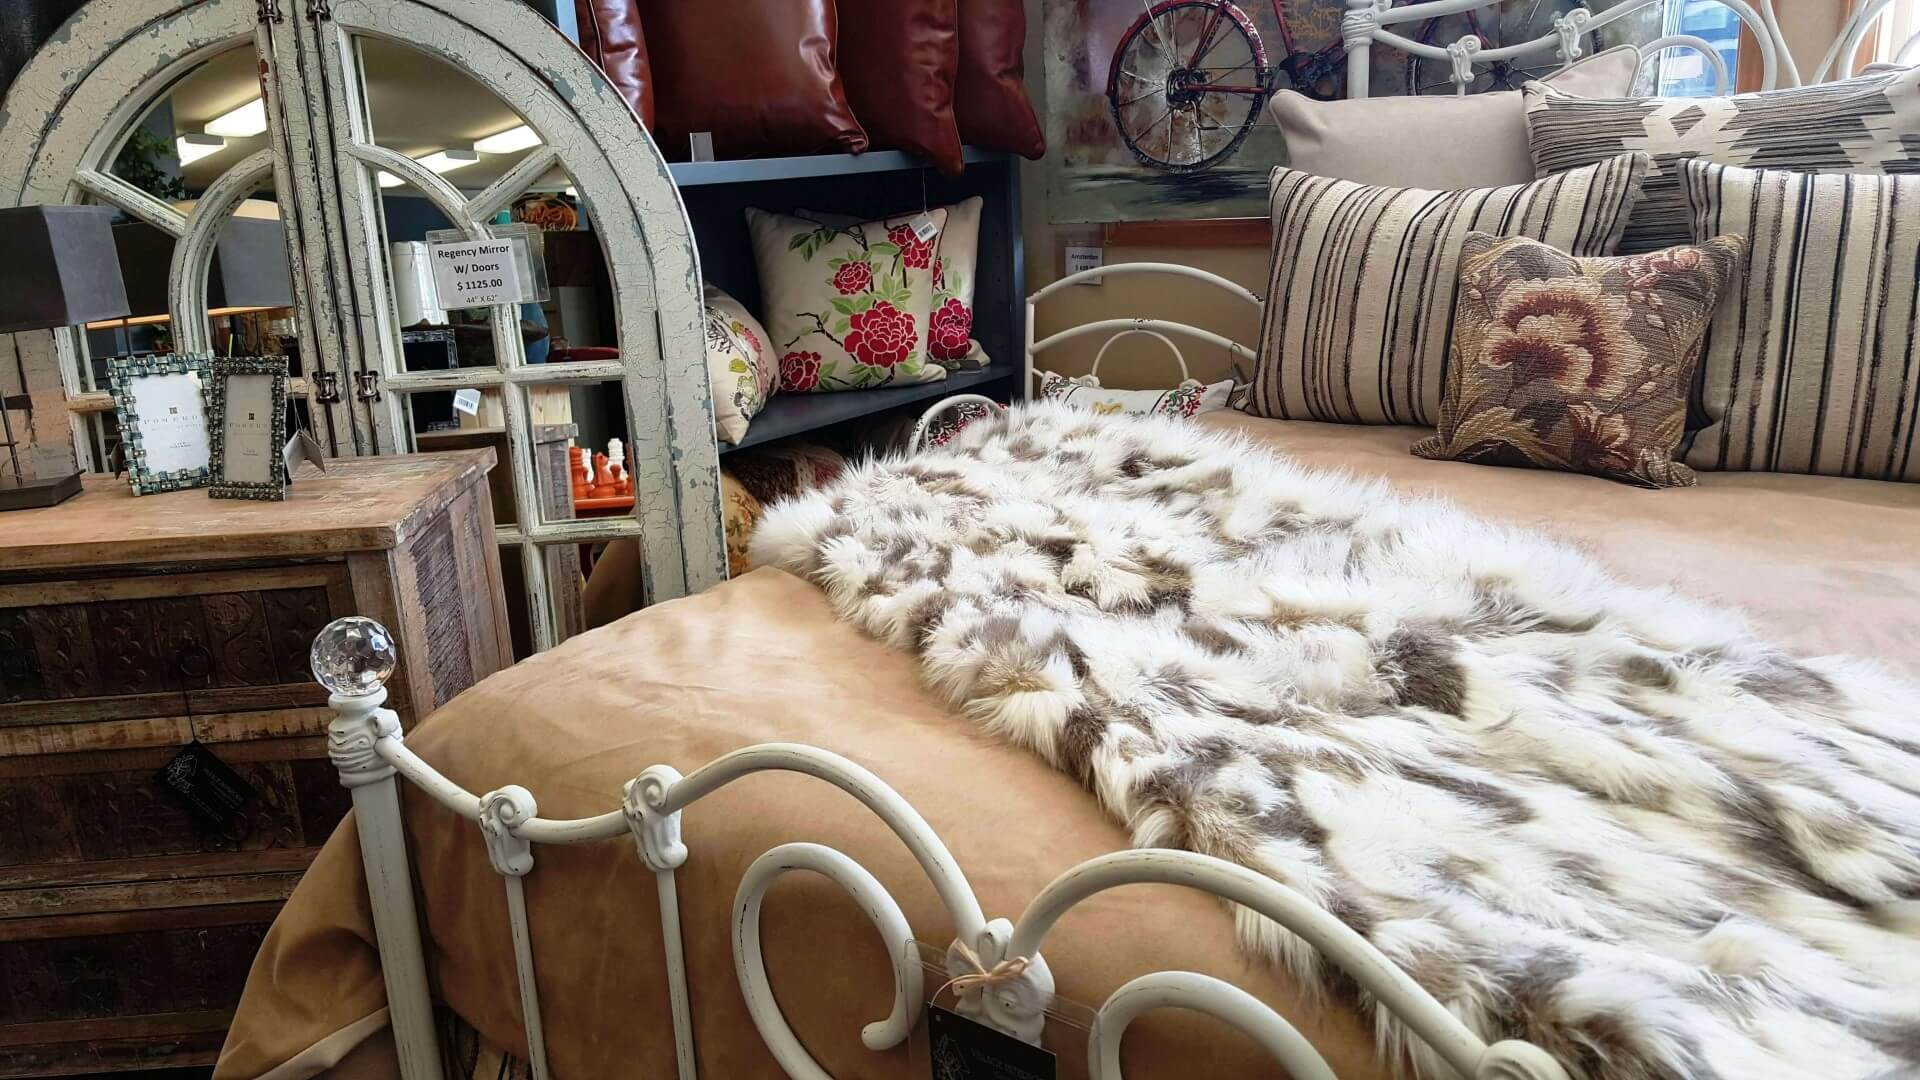 Premium quality designer furniture showroom to see touch and feel our - Every Item Is Work Of Art In Its Own Right Stop In And Find Your Next High Quality Sofa Chair Ottoman Accent Pillow Accent Piece Or Artwork